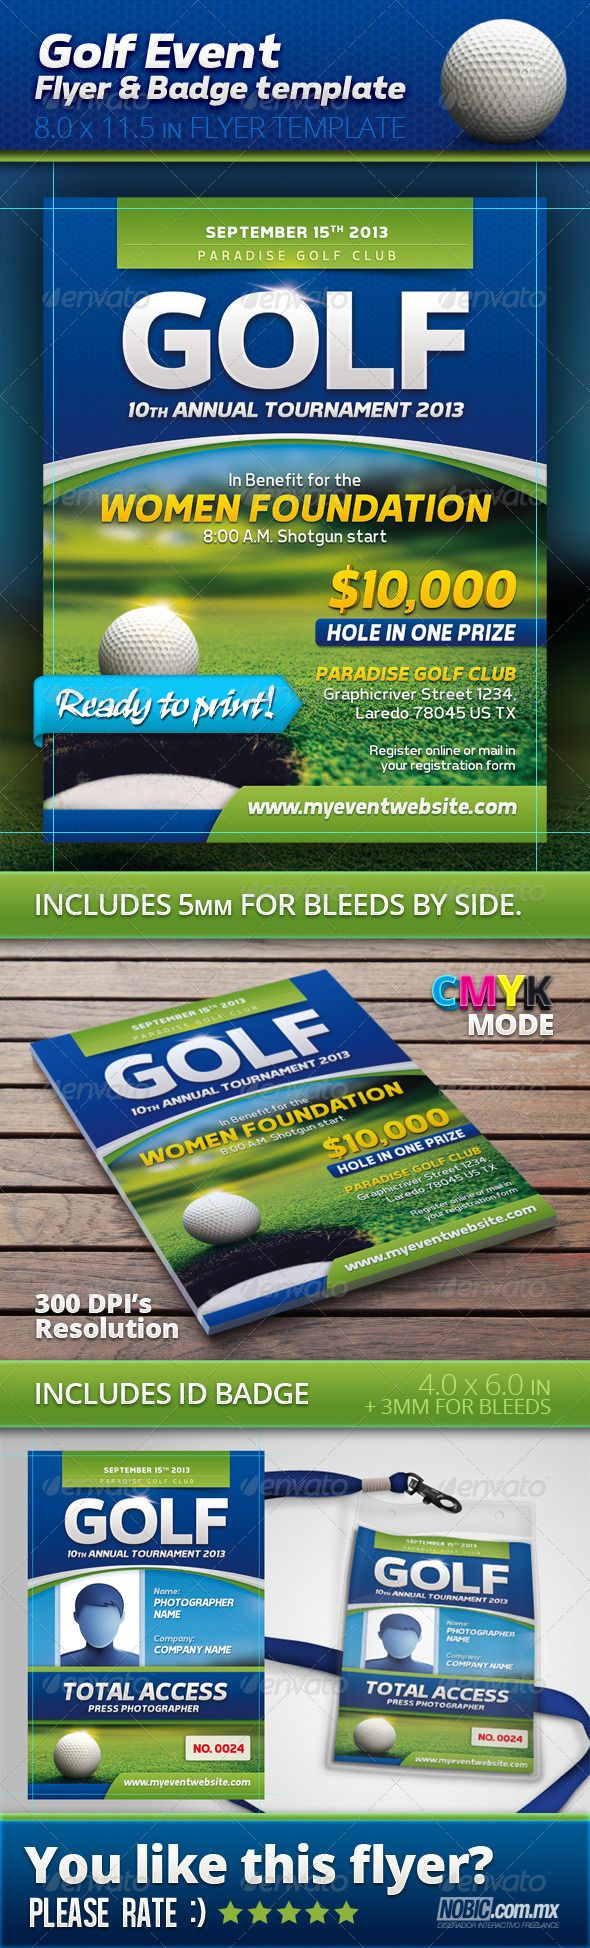 Golf Event Flyer and Badge Template